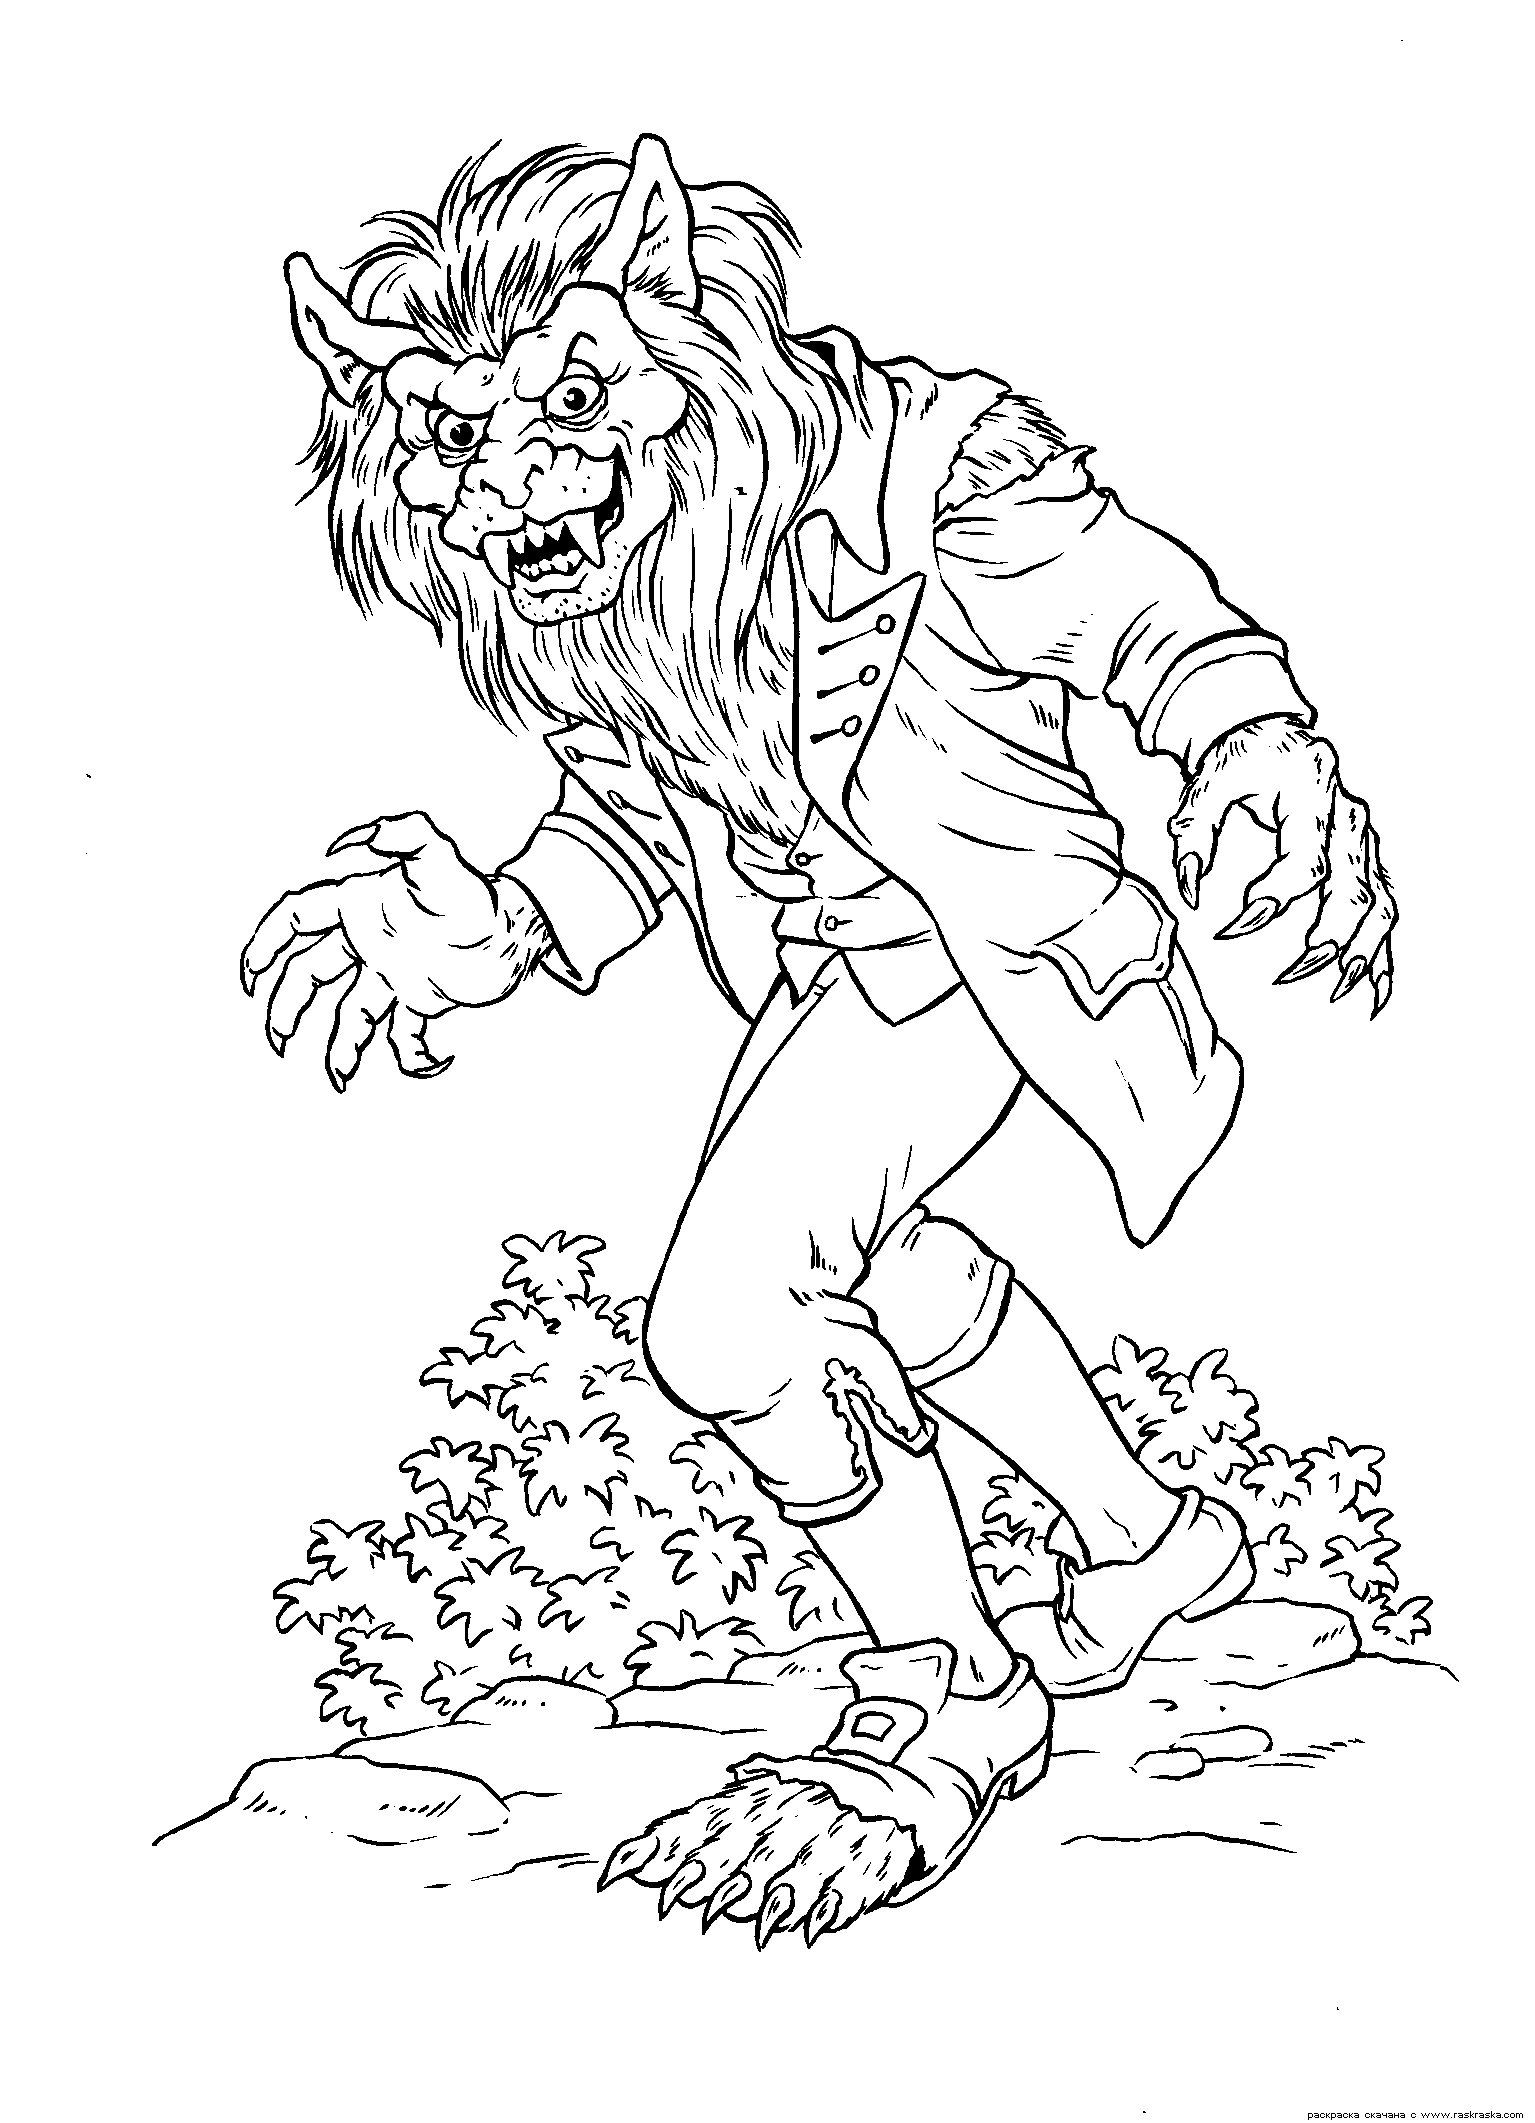 werewolf coloring pages - Google Search | coloring pages ...